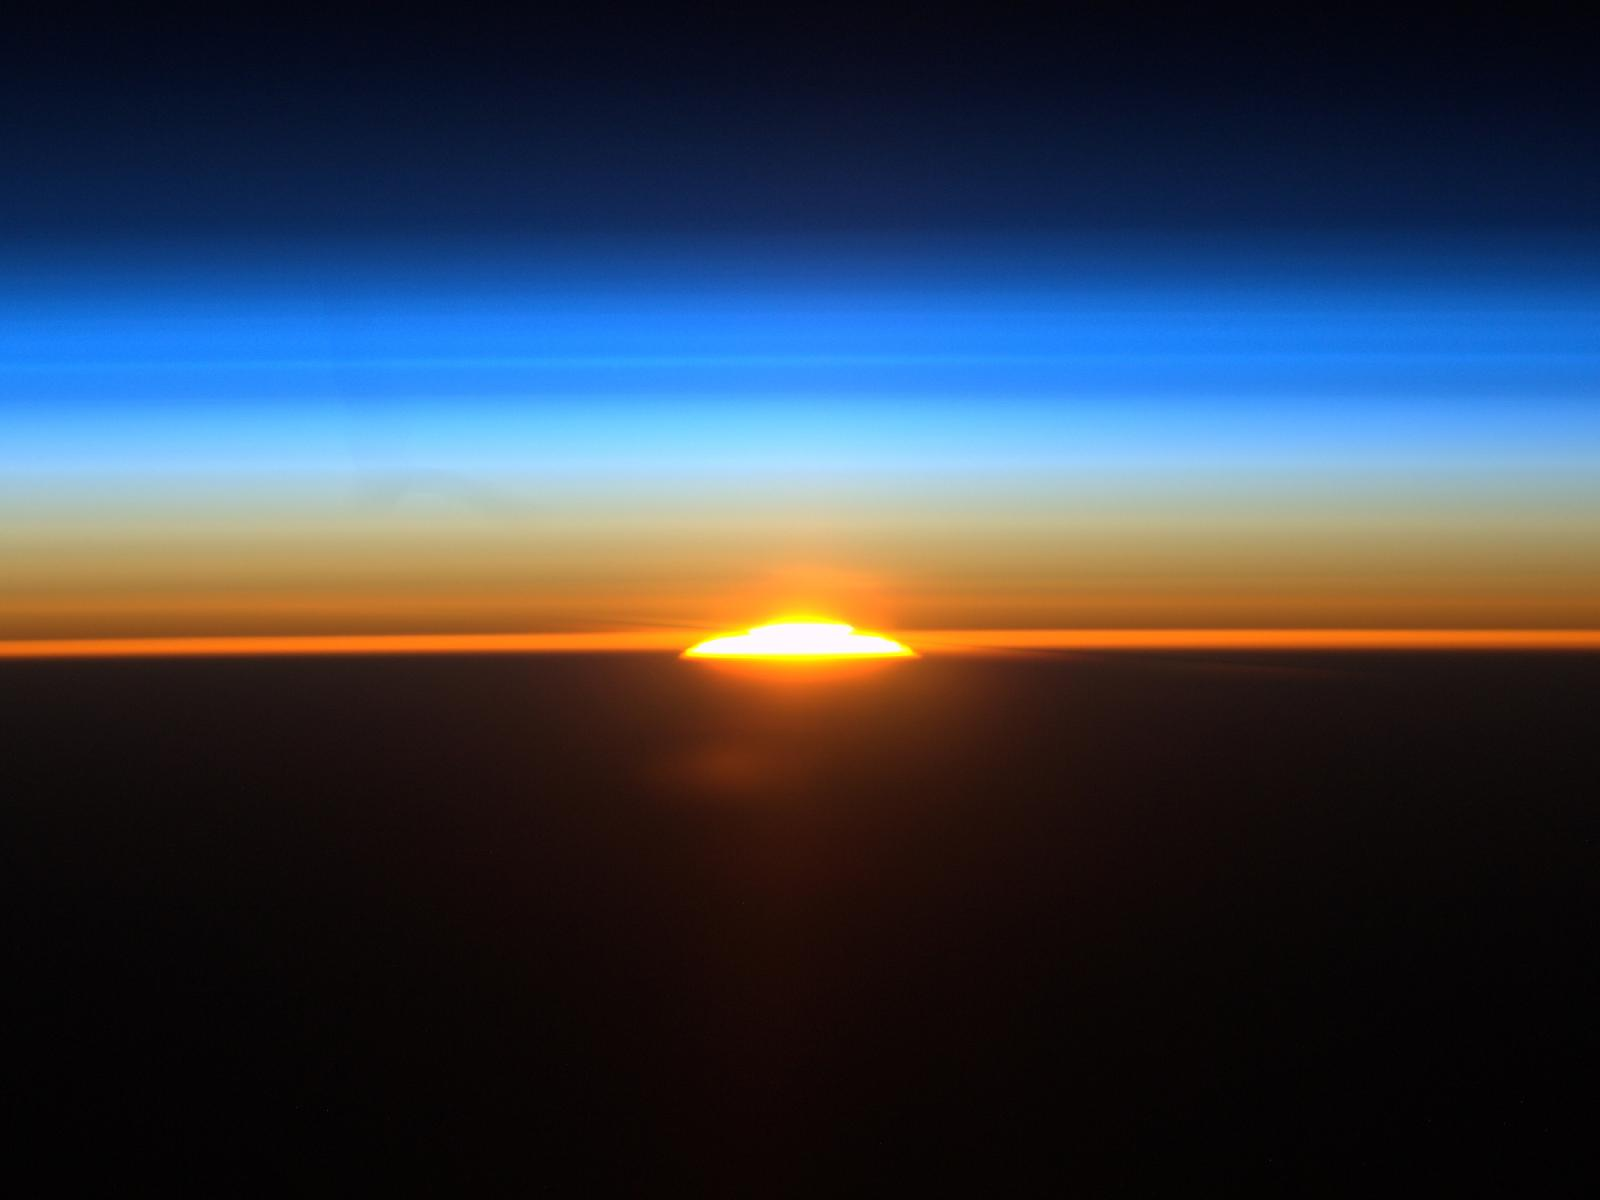 582751main_sunrise_from_iss-4x3_1600-1200.jpg